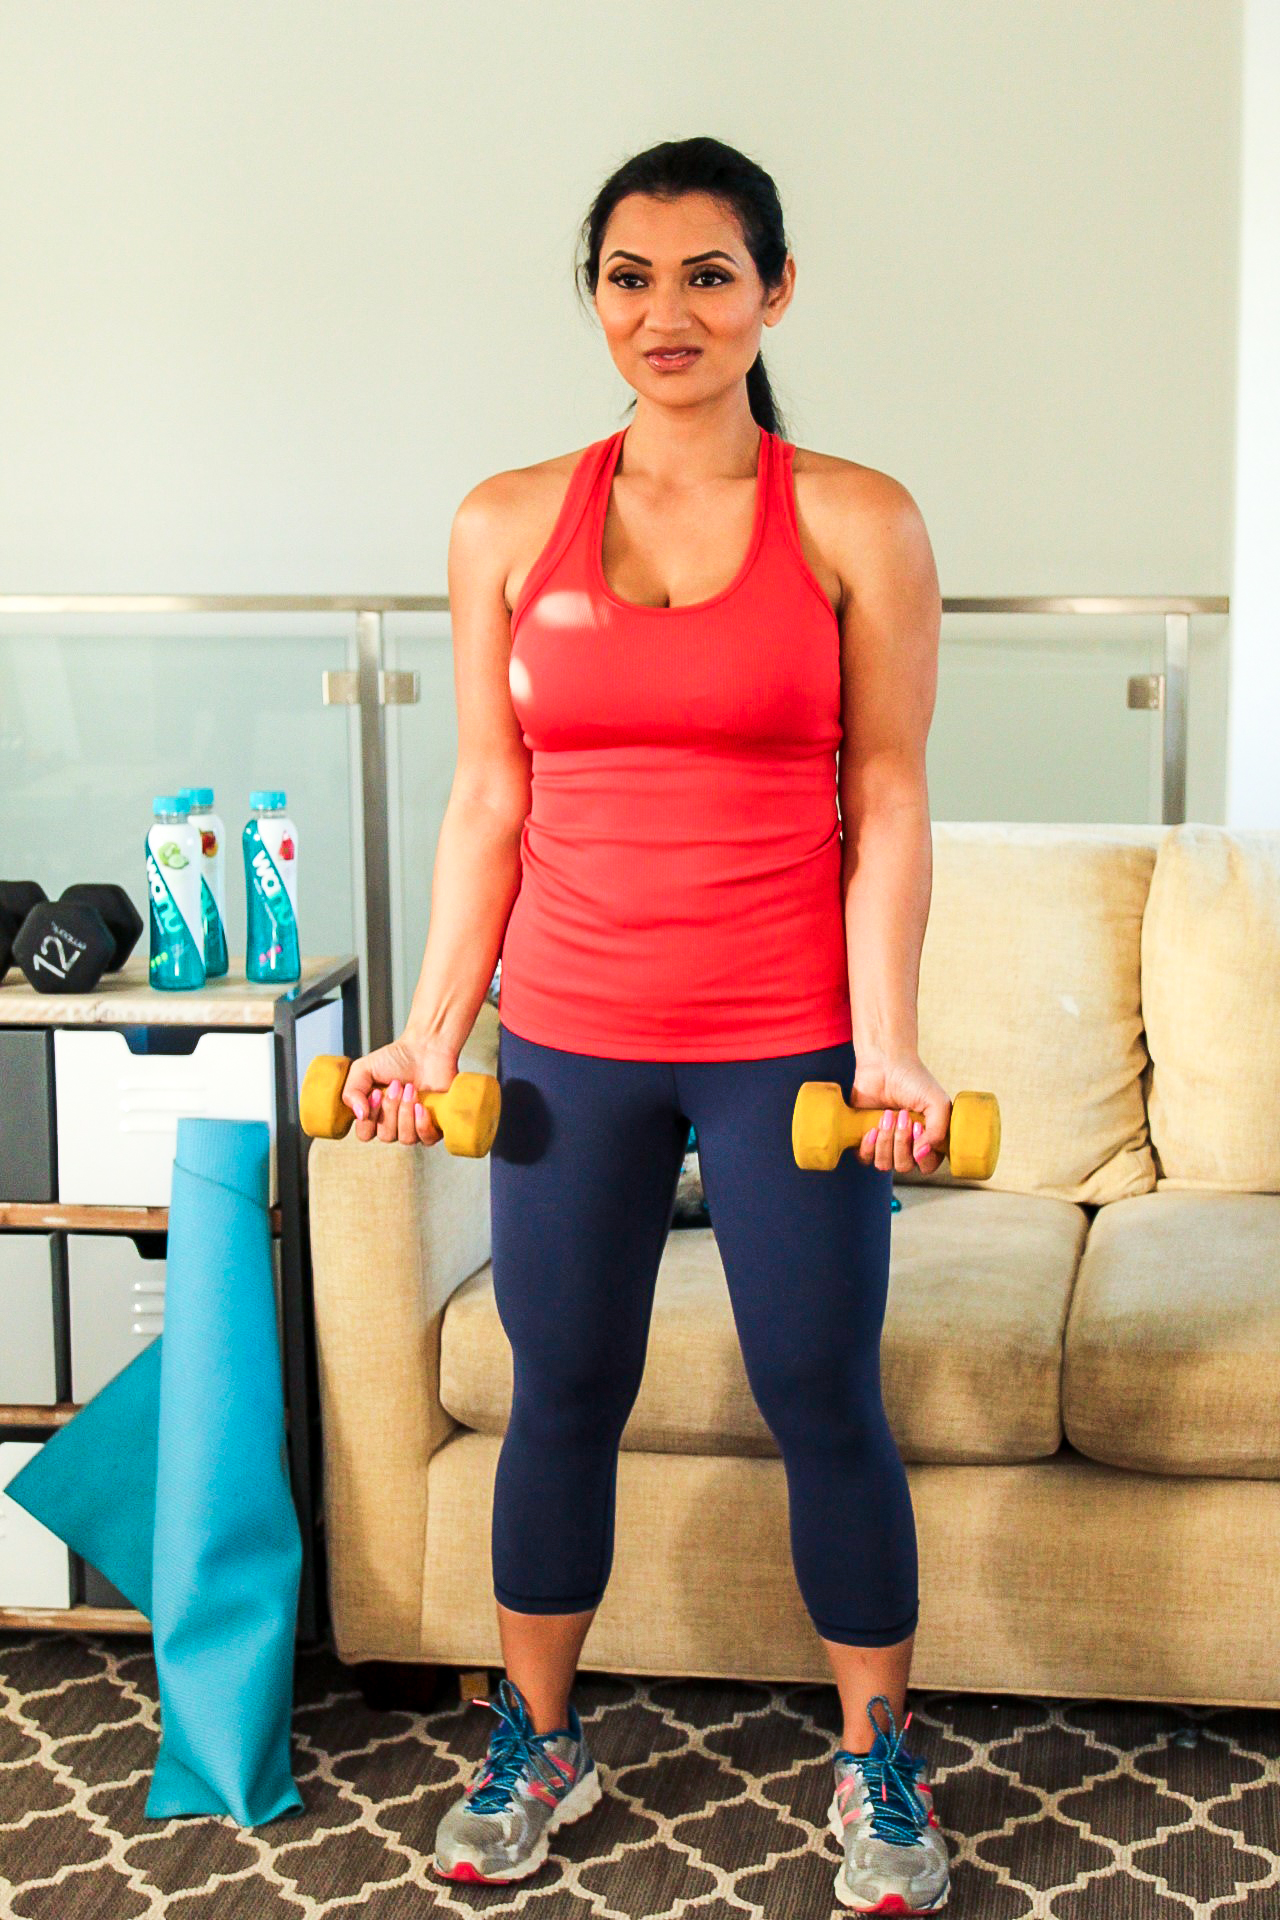 Weight Training for Women: 5 Reasons You Should Do it Too by popular lifestyle blogger To Thine Own Style Be True